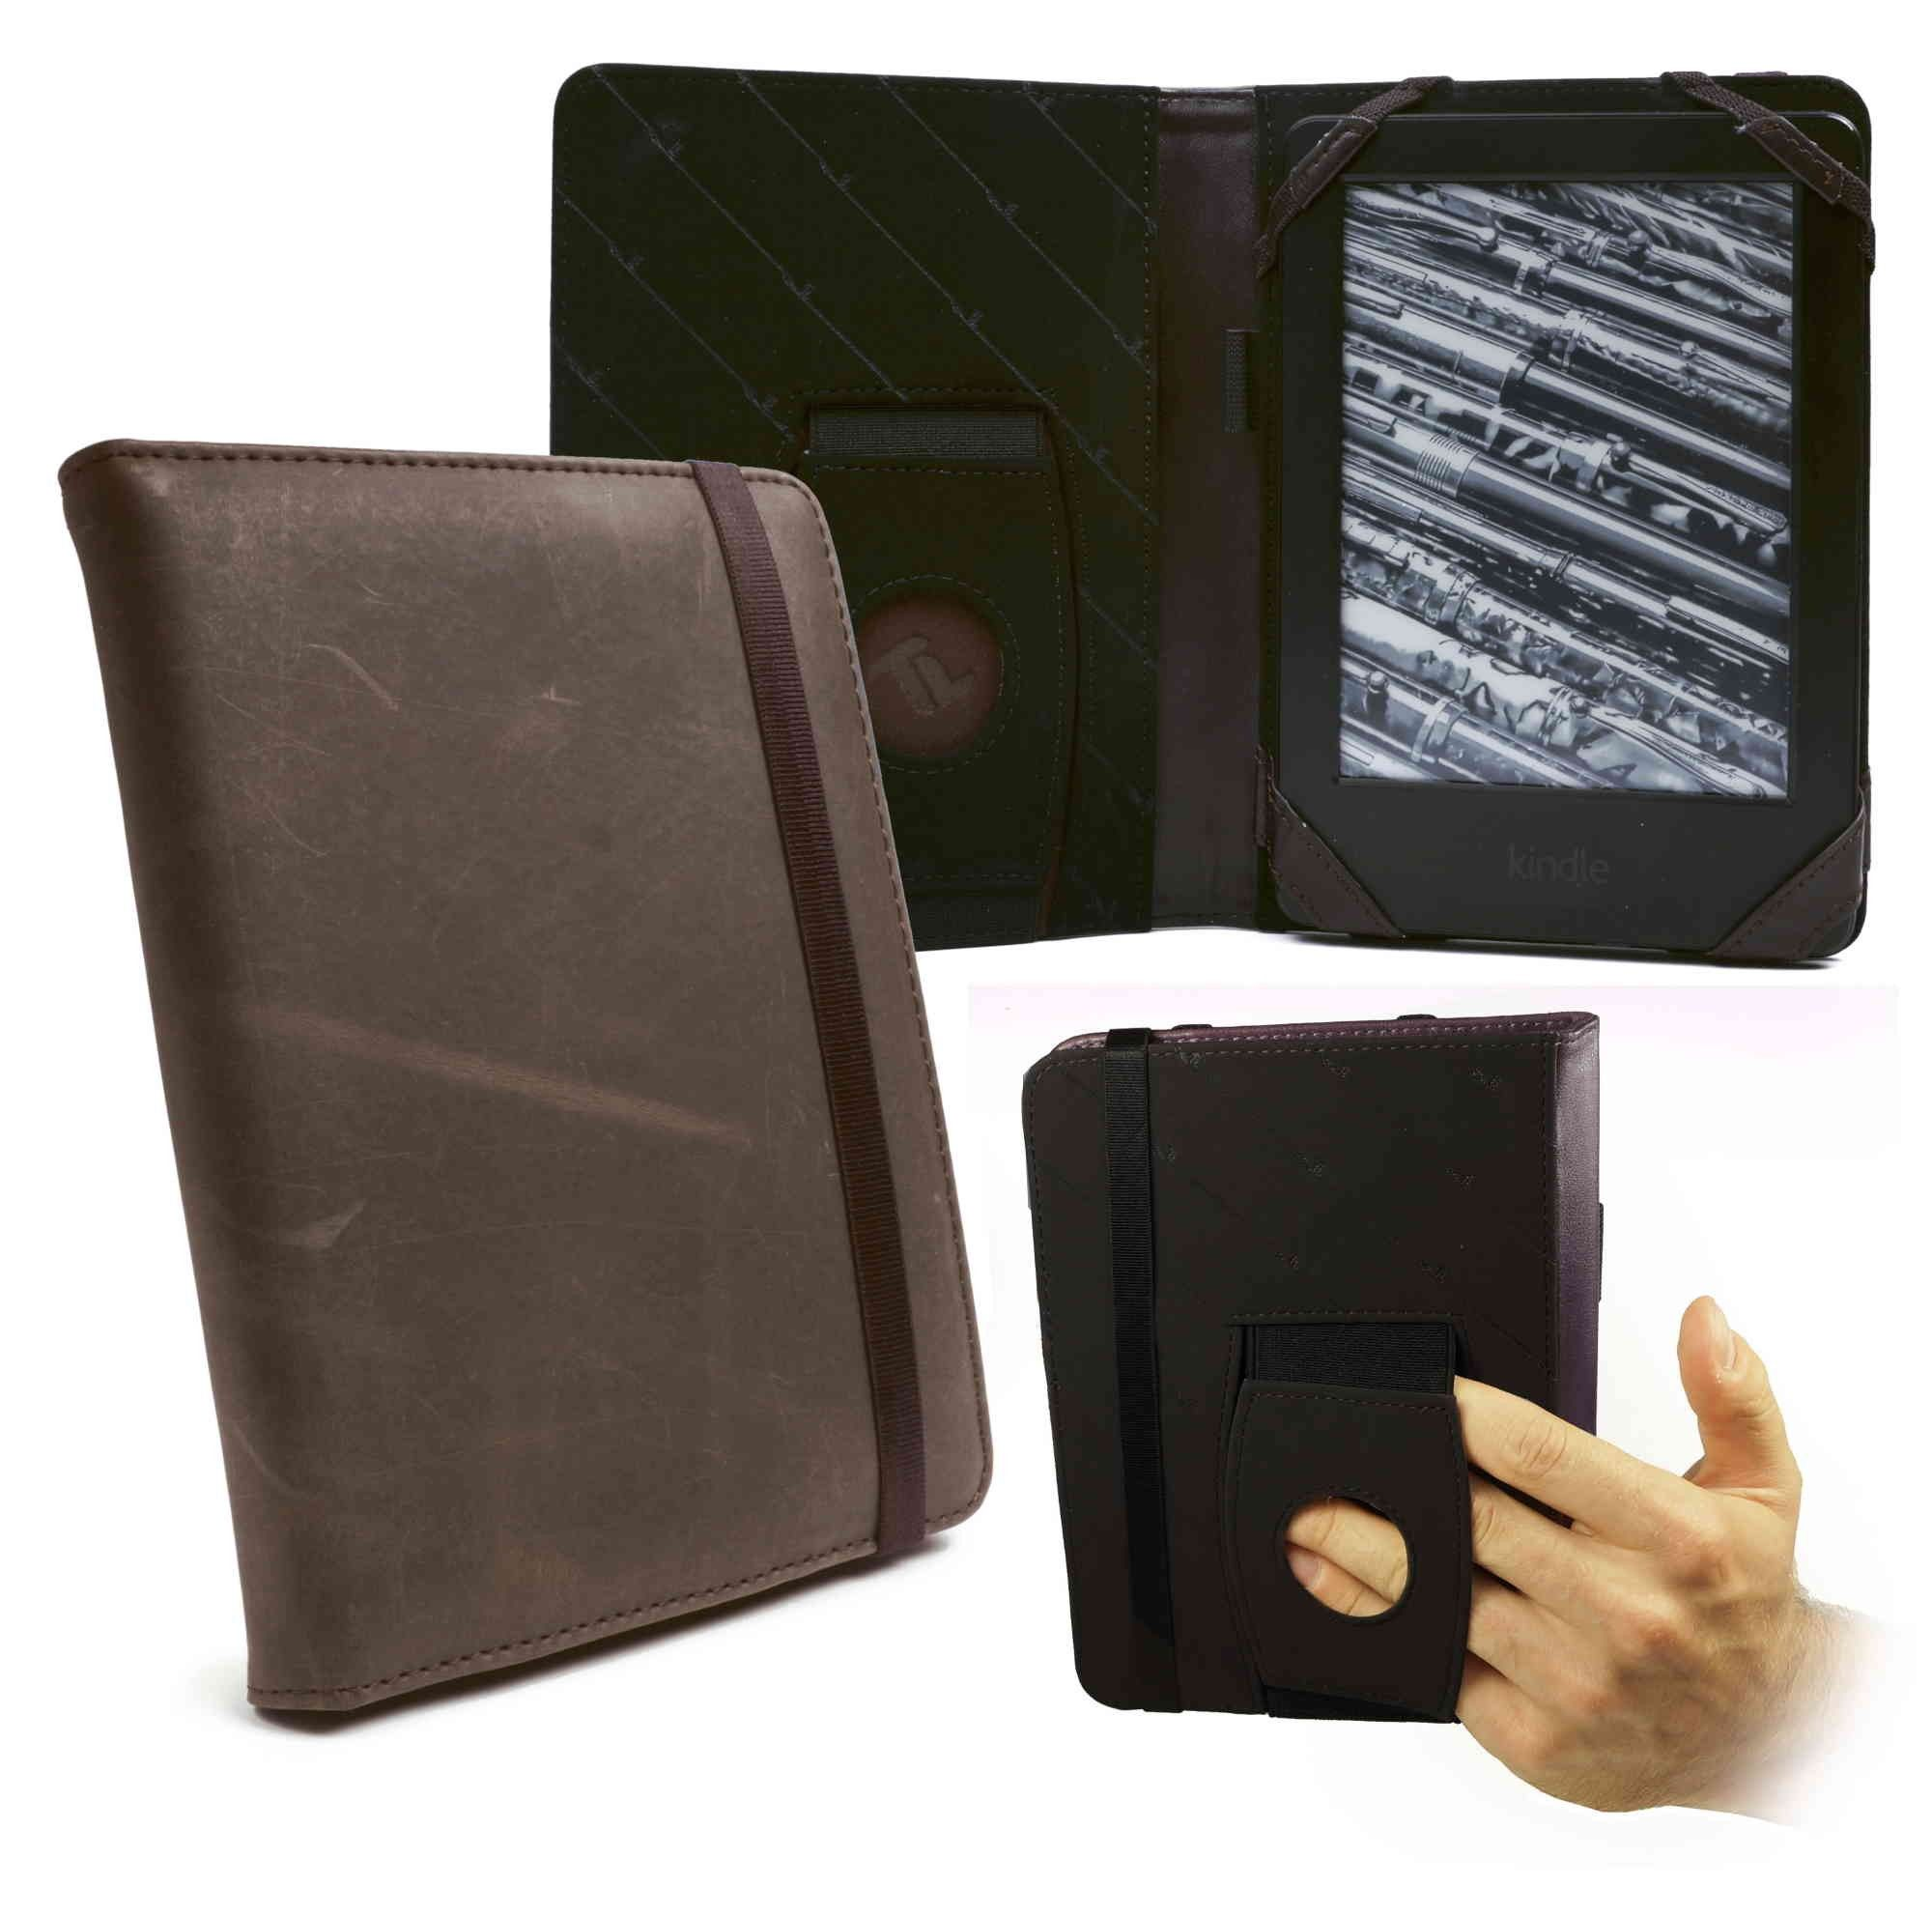 Amazon Kindle Paperwhite leather ereader case in brown | Tuff-Luv